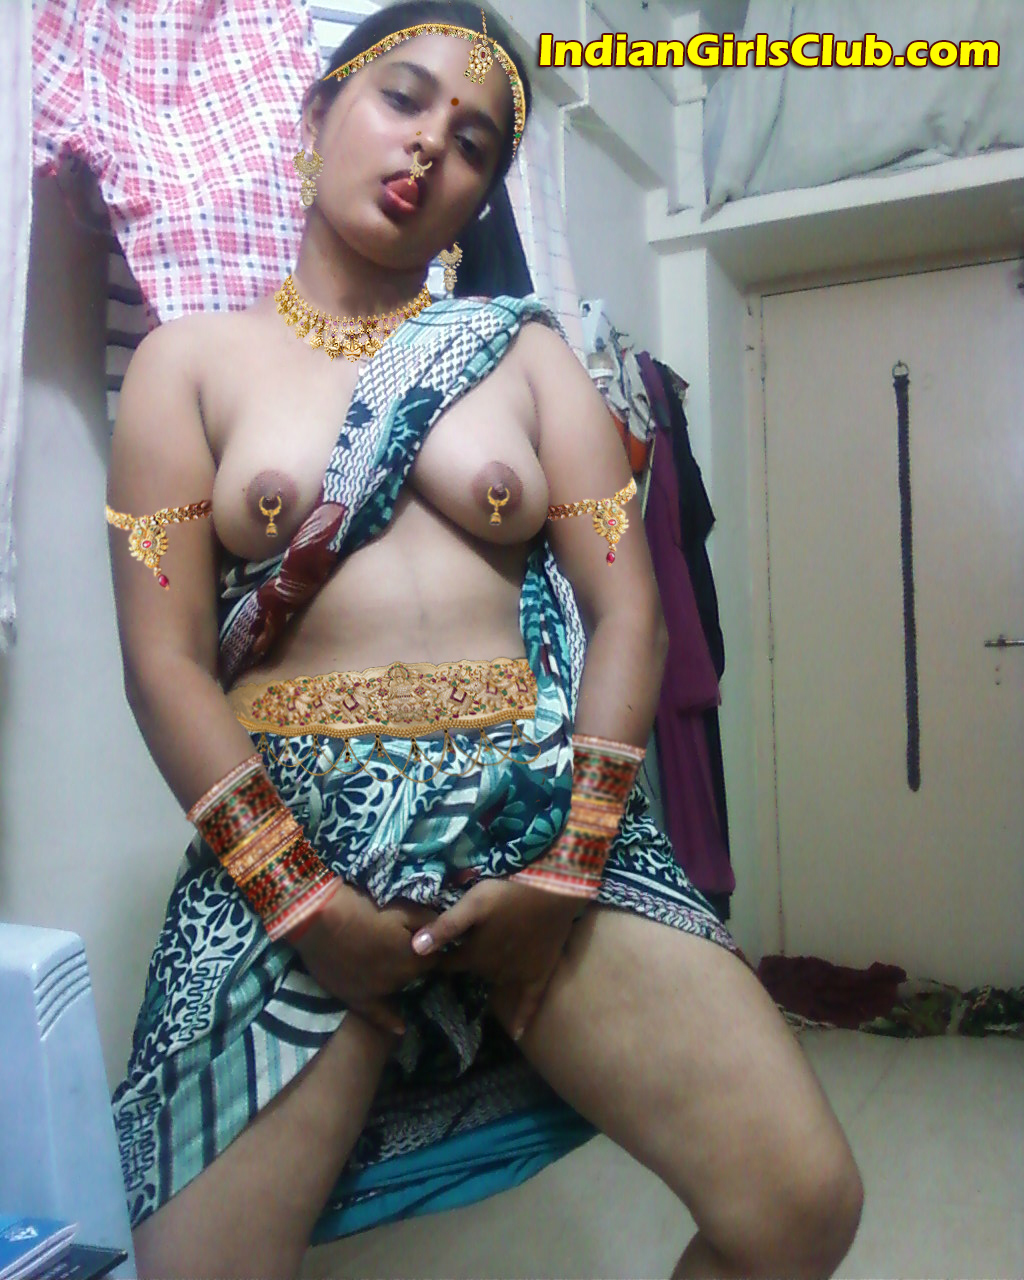 Indian girls Nude Photos